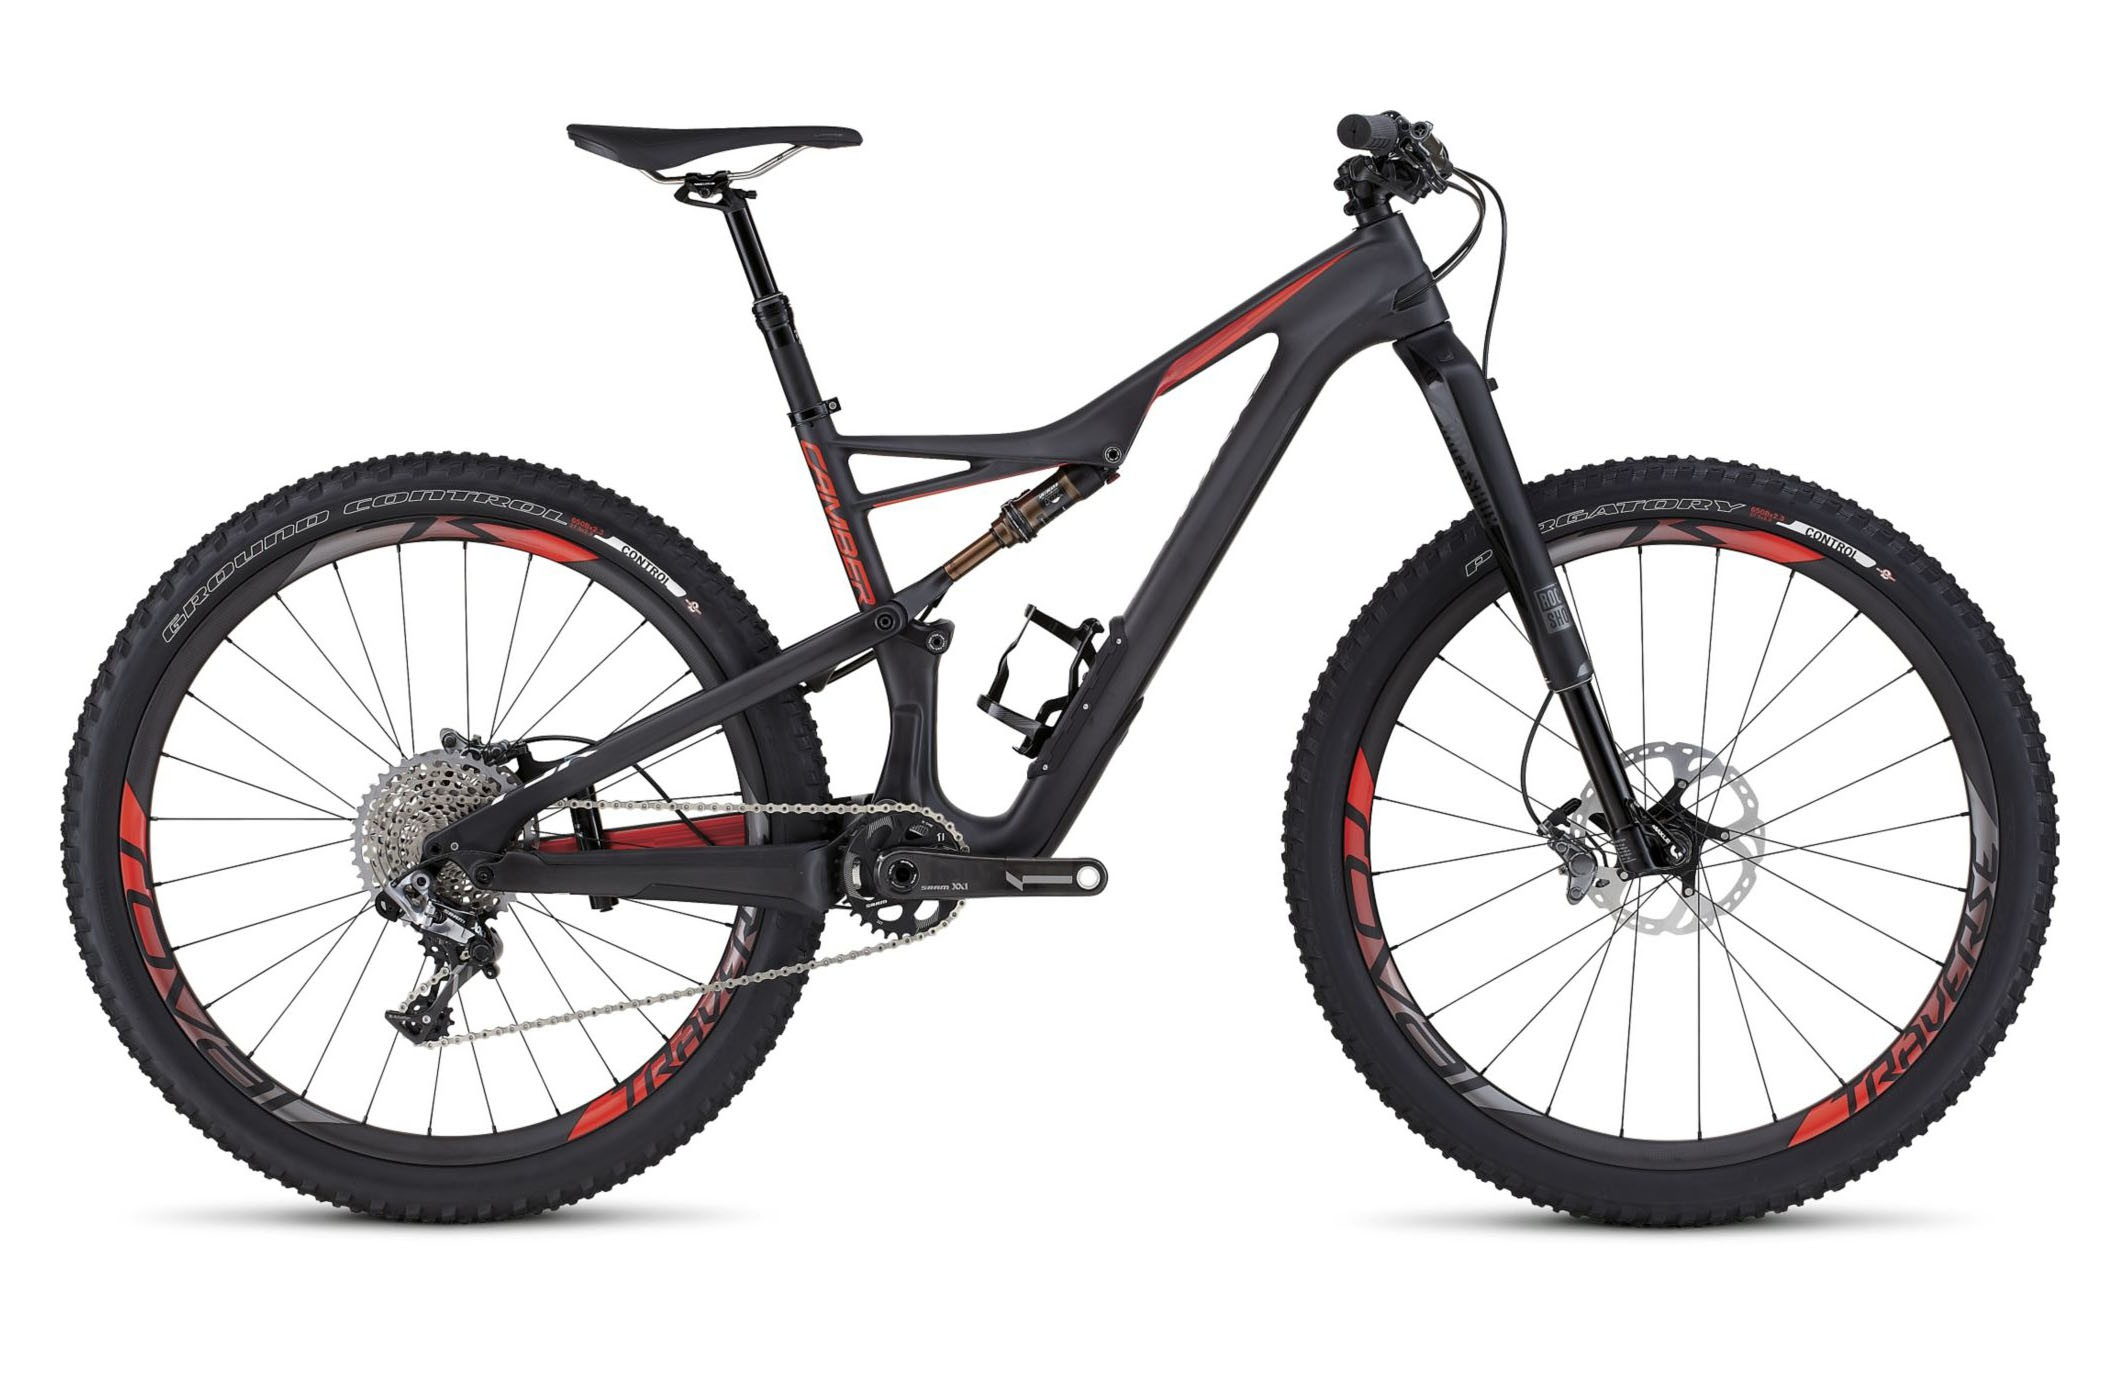 Горный велосипед Specialized S-Works Camber 650b (2016)